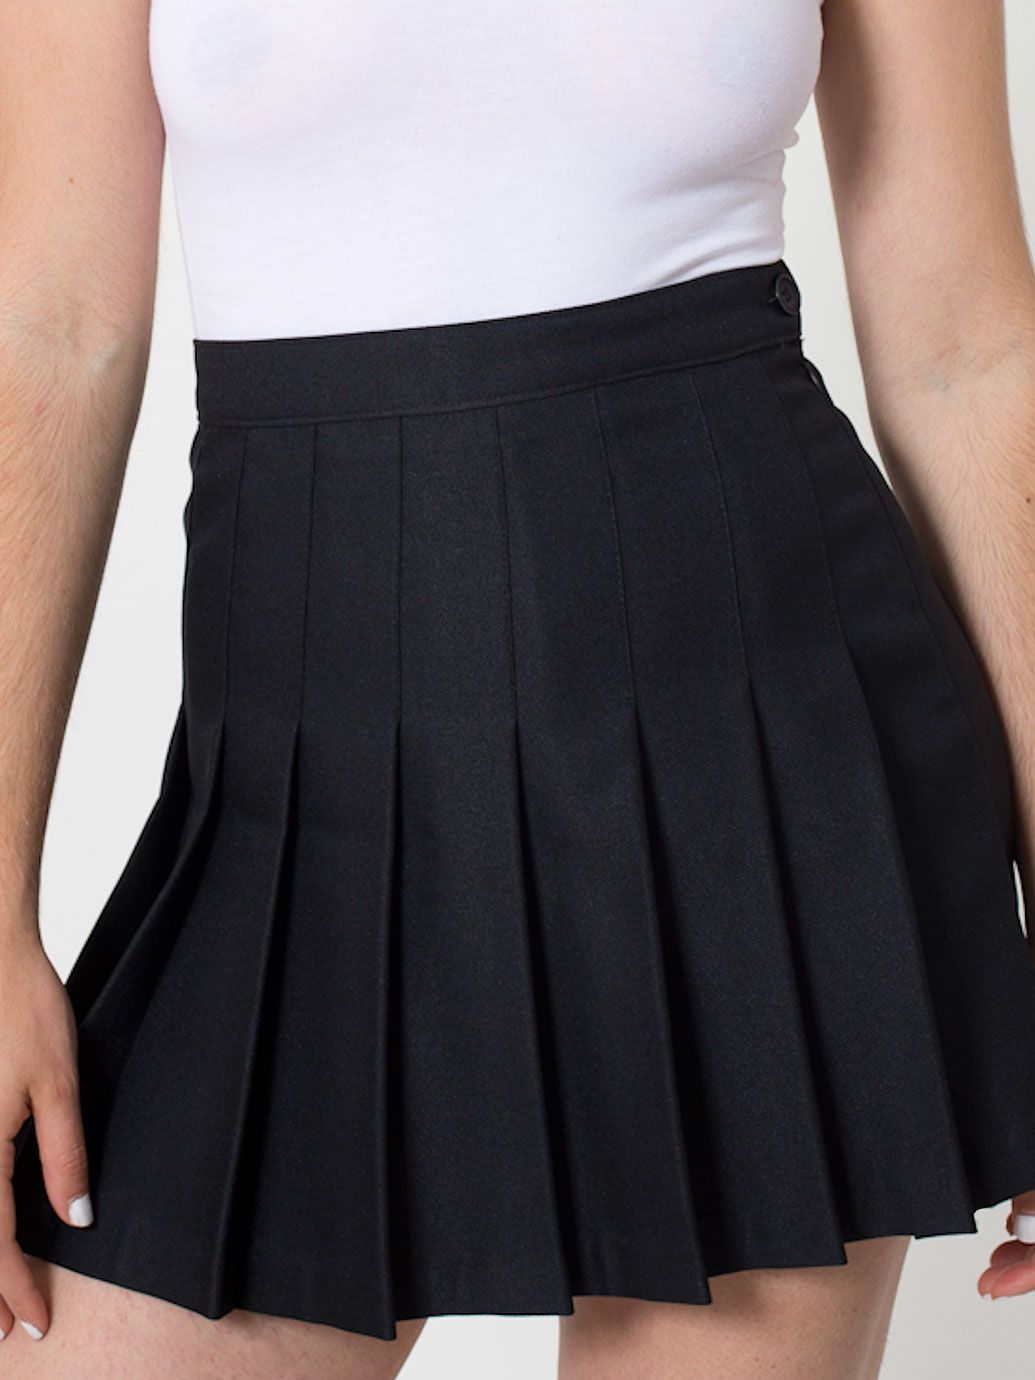 8ebd952138 Tennis Skirt in black by American Apparel // have this in white ...